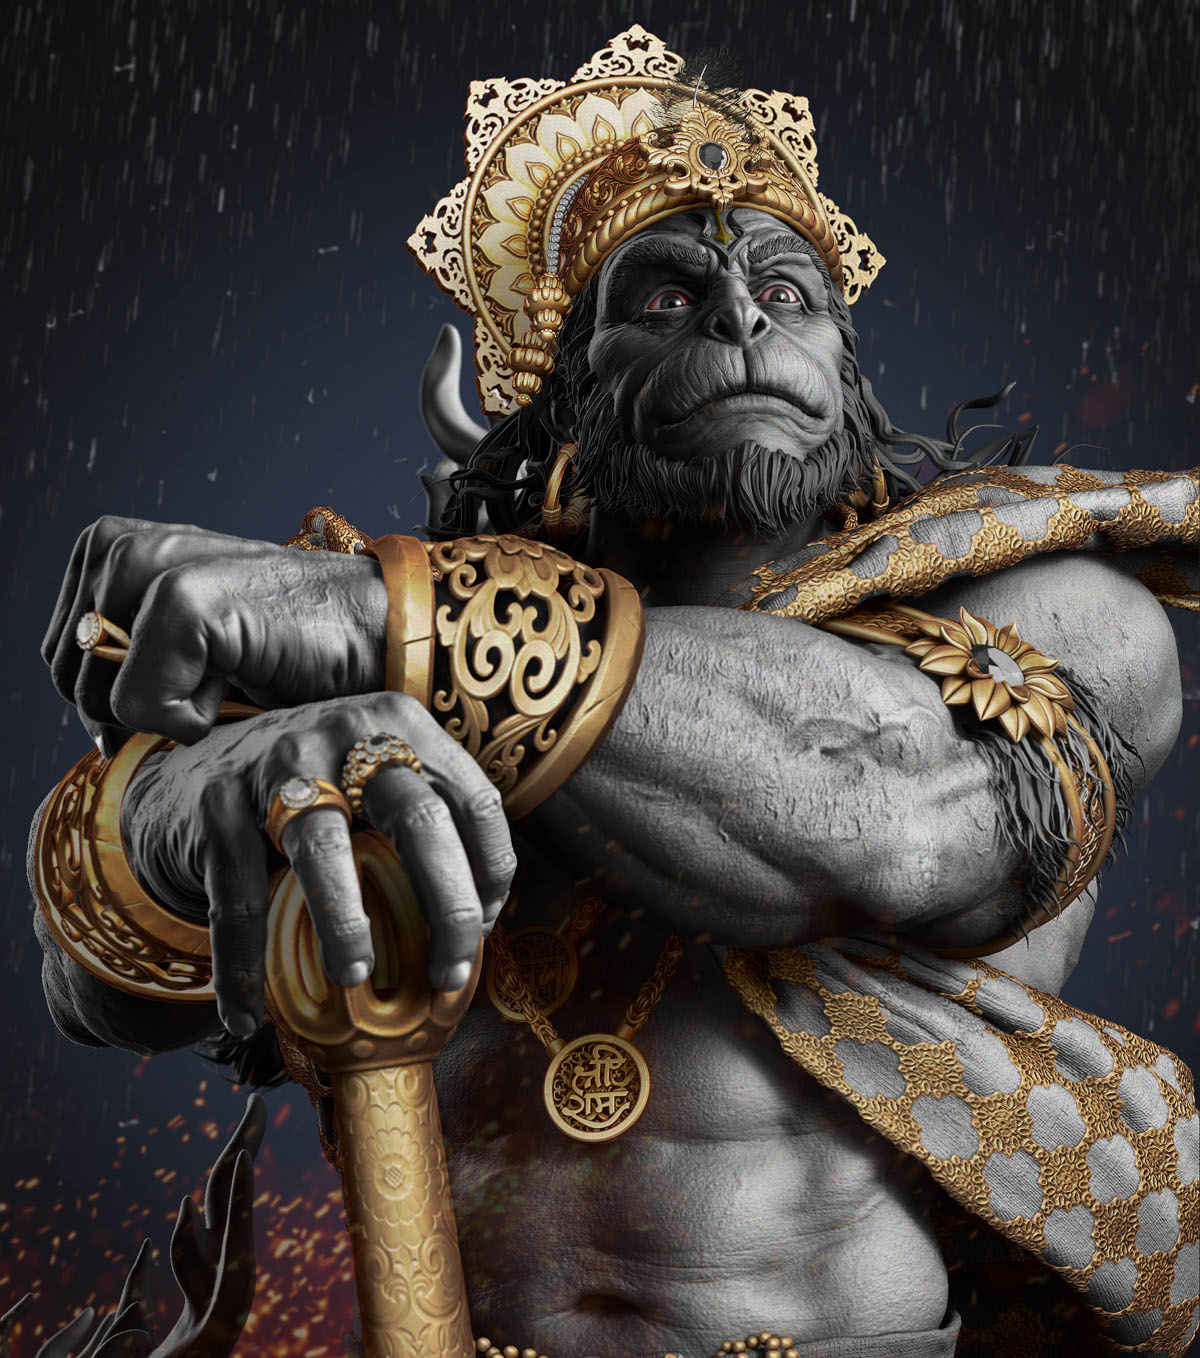 zbrush model sculpture god hanuman by gaurav kumar